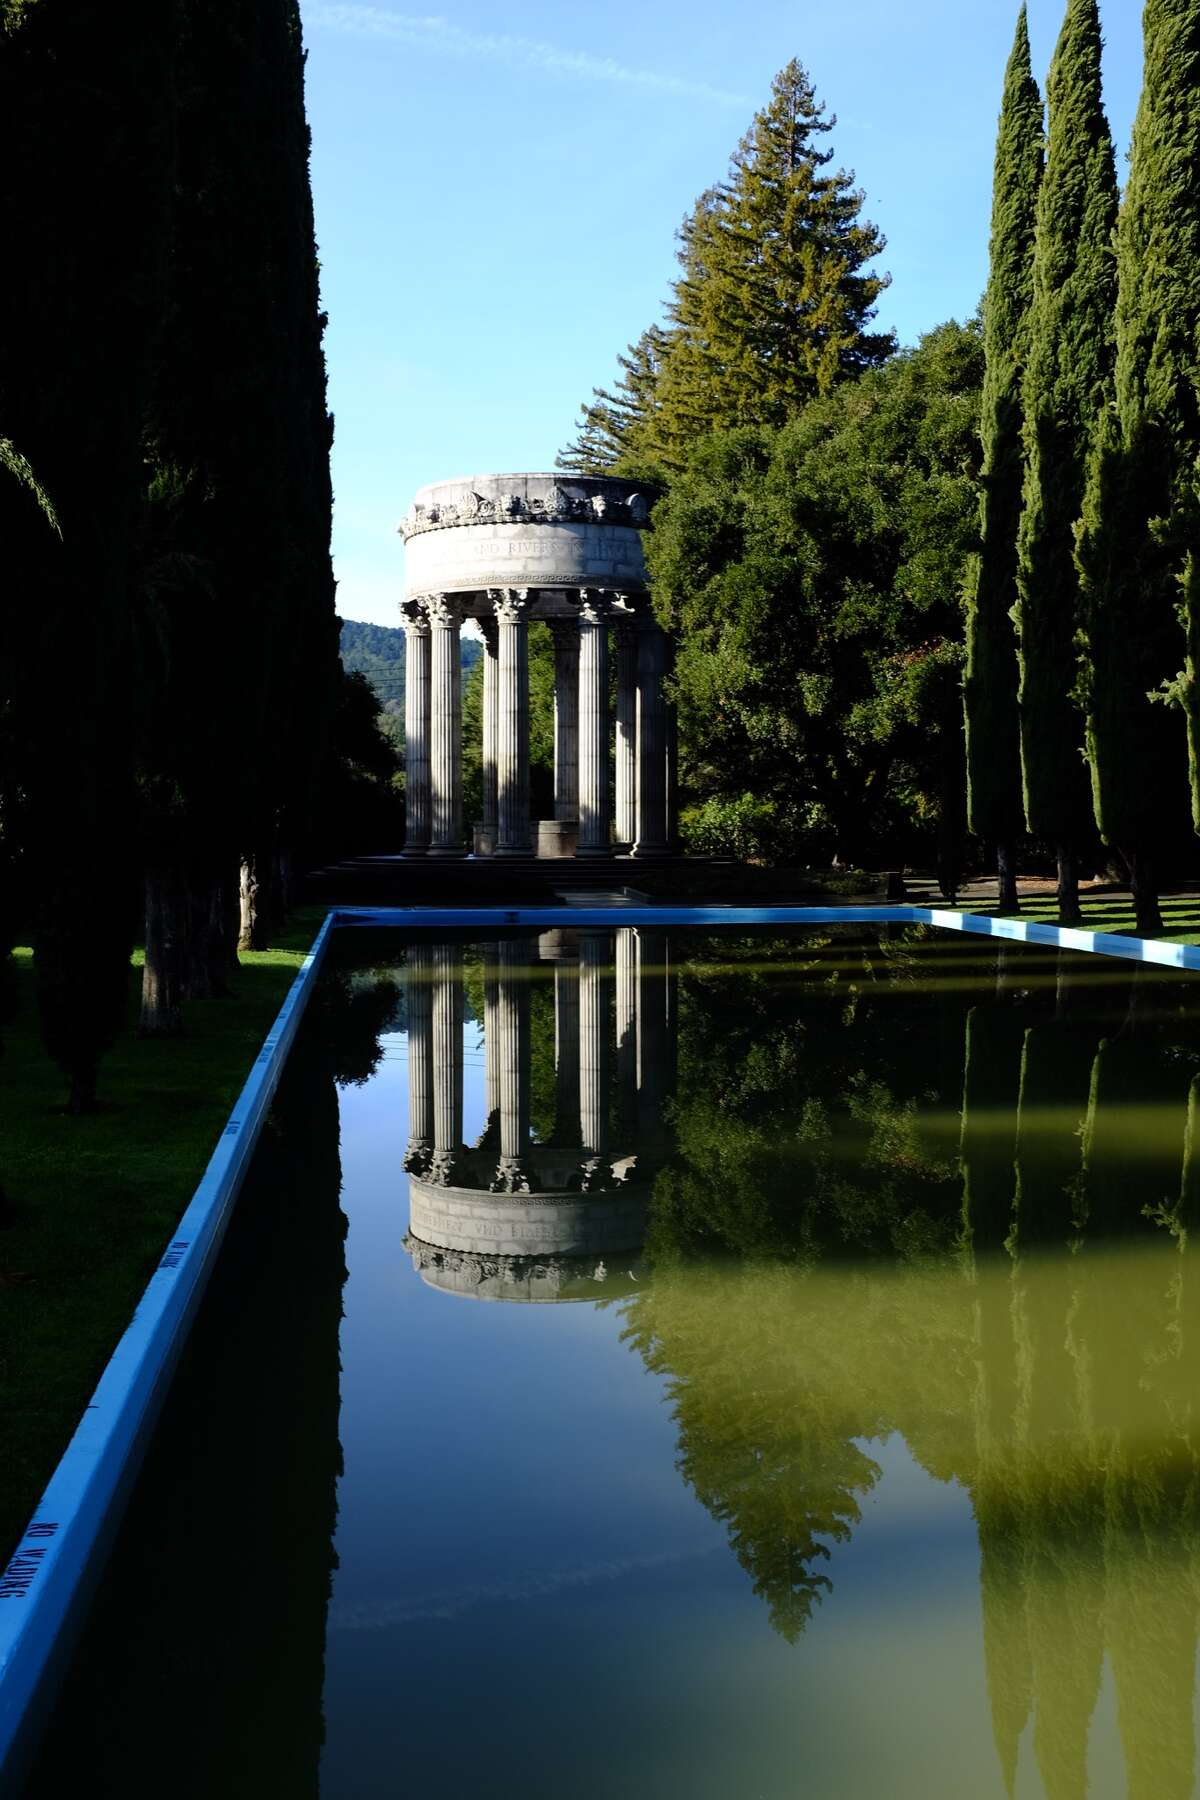 The classically inspired Pulgas Water Temple pays homage to one of the great engineering feats in California history: bringing Hetch Hetchy water to San Francisco.